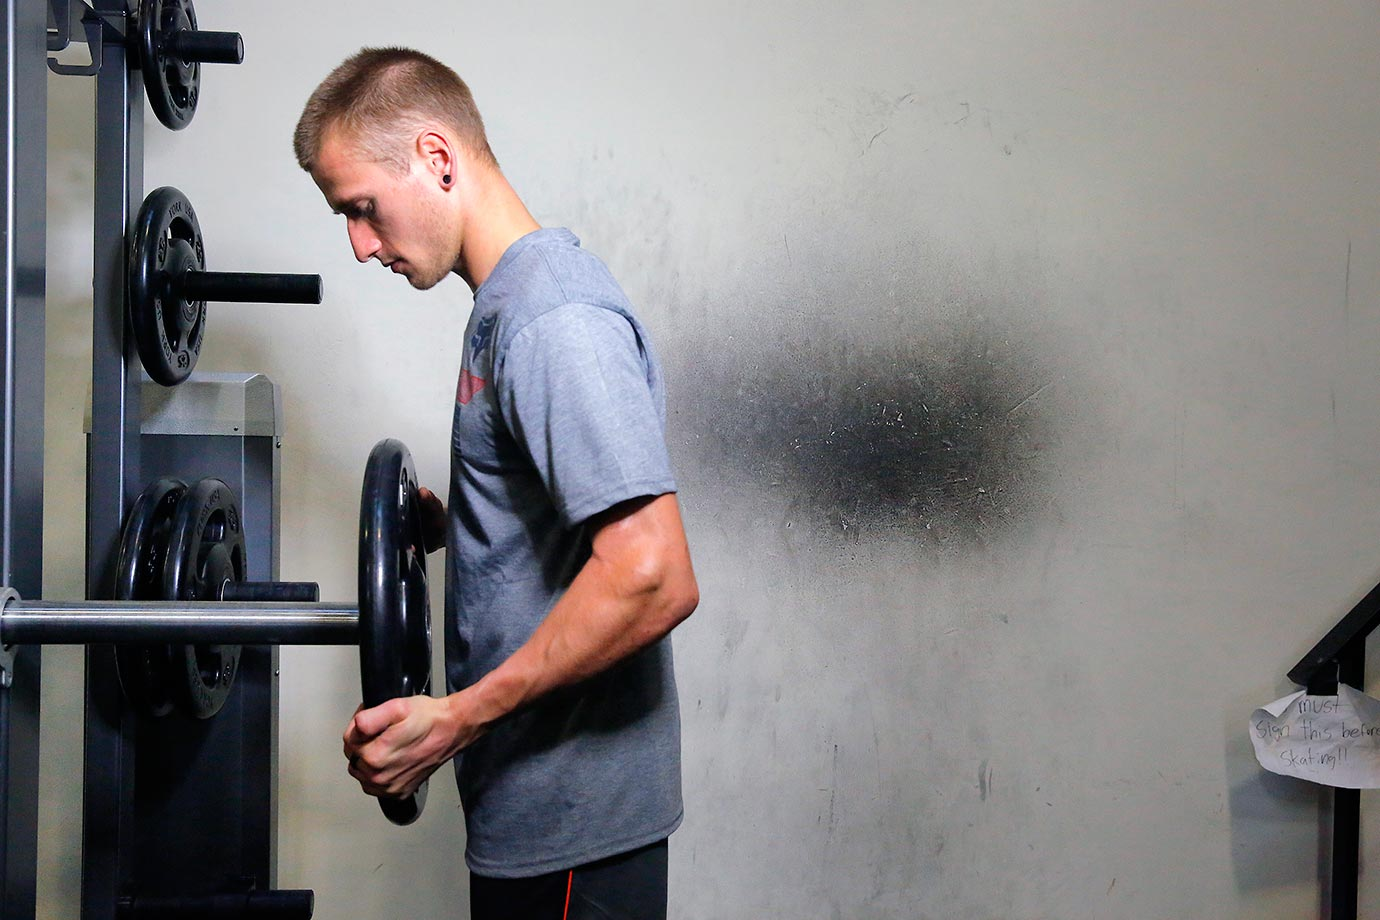 Ken Roczen puts some weights on the machine at the gym this week during training.